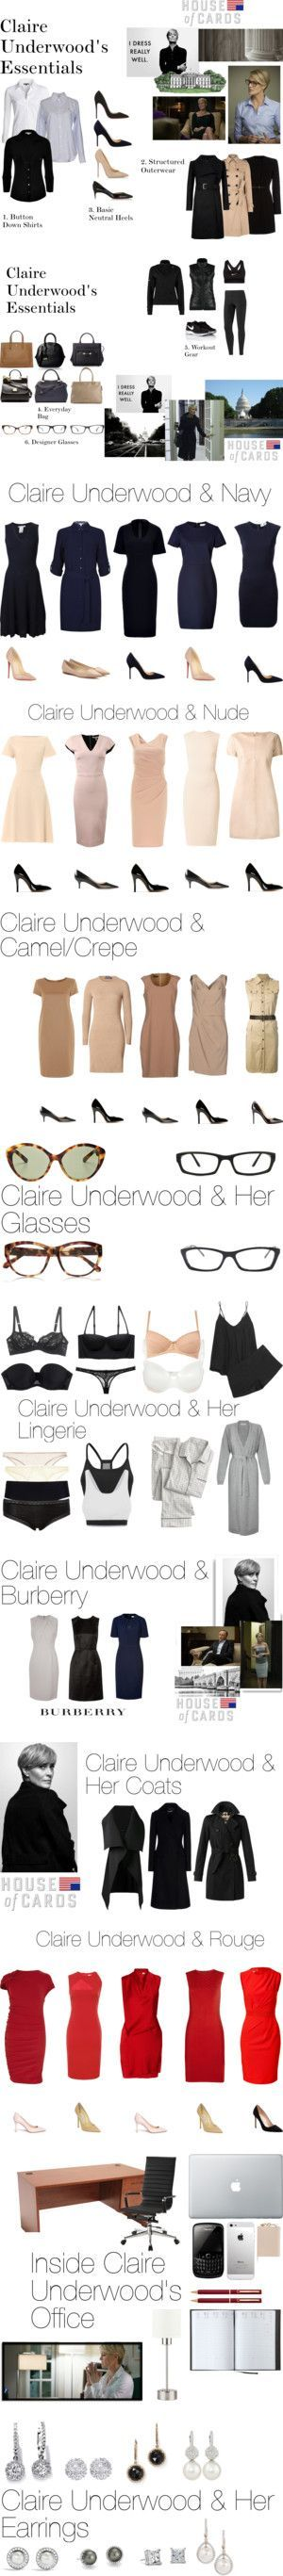 Claire Underwood's Wardrobe by oliviapope411 on Polyvore featuring NIC+ZOE, Ralph Lauren, Marella, Hobbs, Ted Baker, Manolo Blahnik, Jimmy Choo, Christian Louboutin, James Perse and Burberry